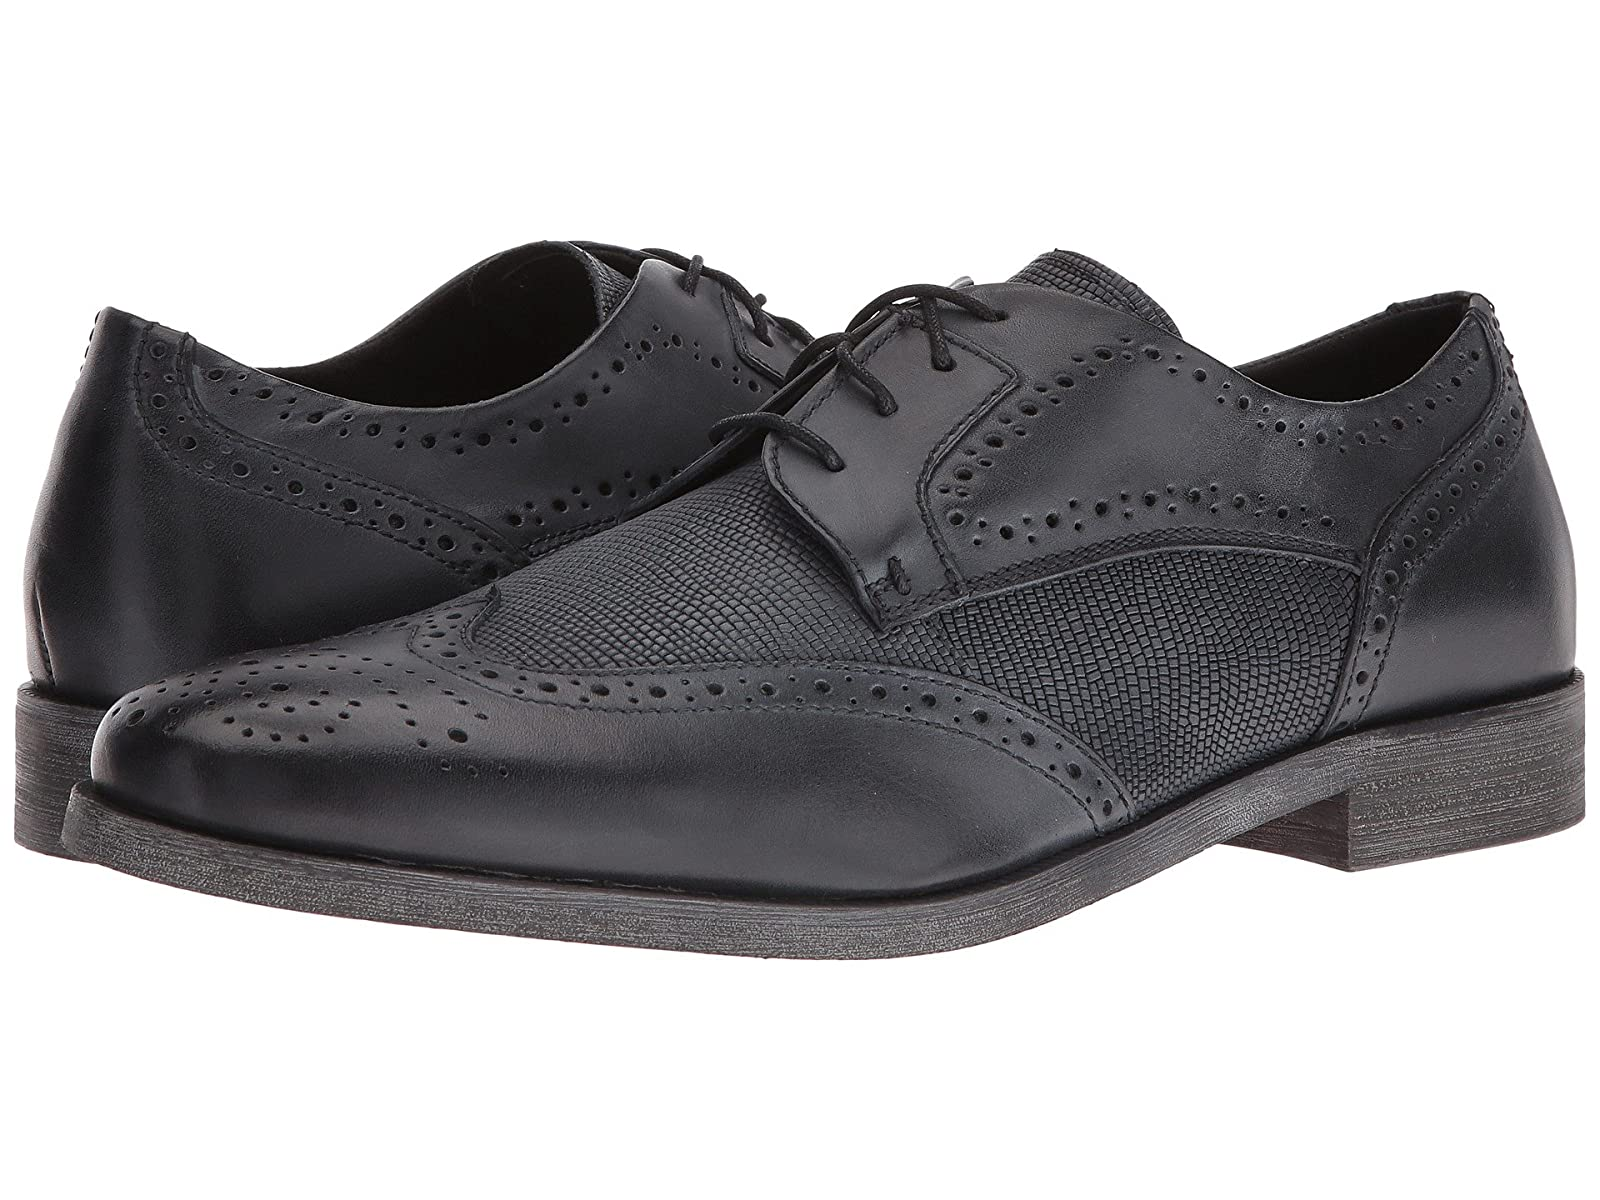 Stacy Adams Bastian Wingtip Oxford Oxford Oxford f9185d